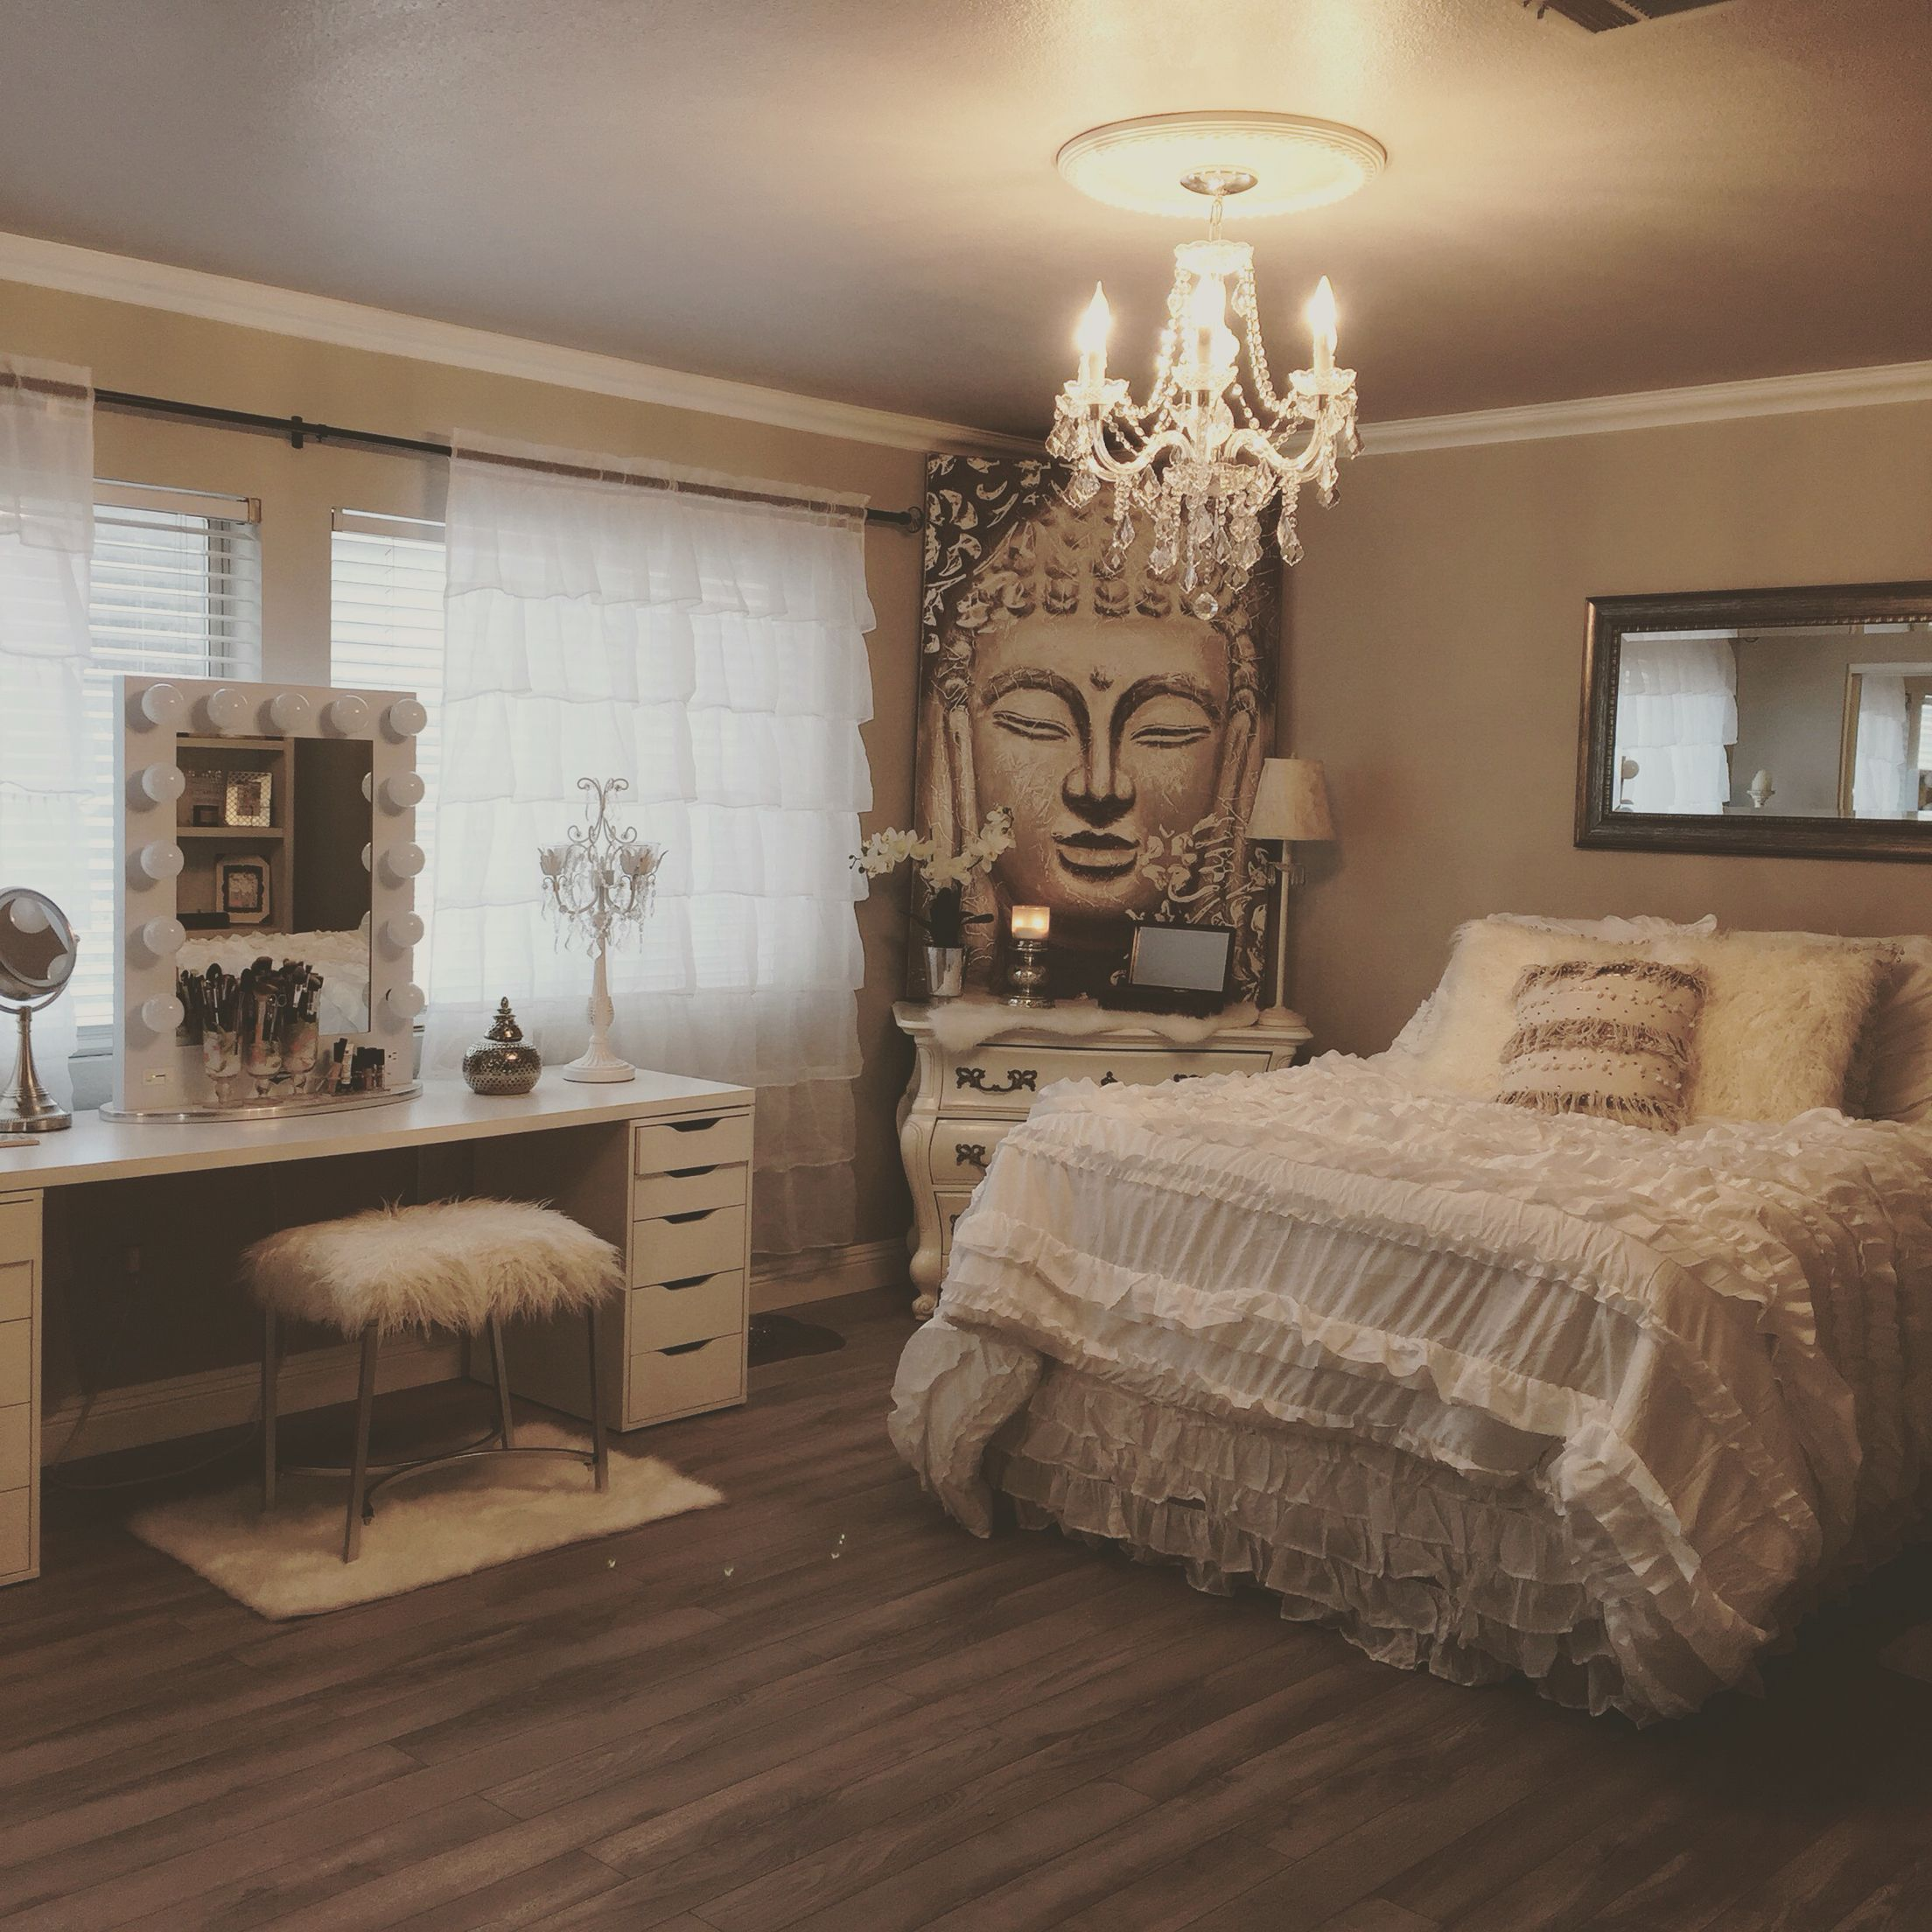 Shabby chic meets zen glam my new bedroom pinterest for Bedroom look ideas